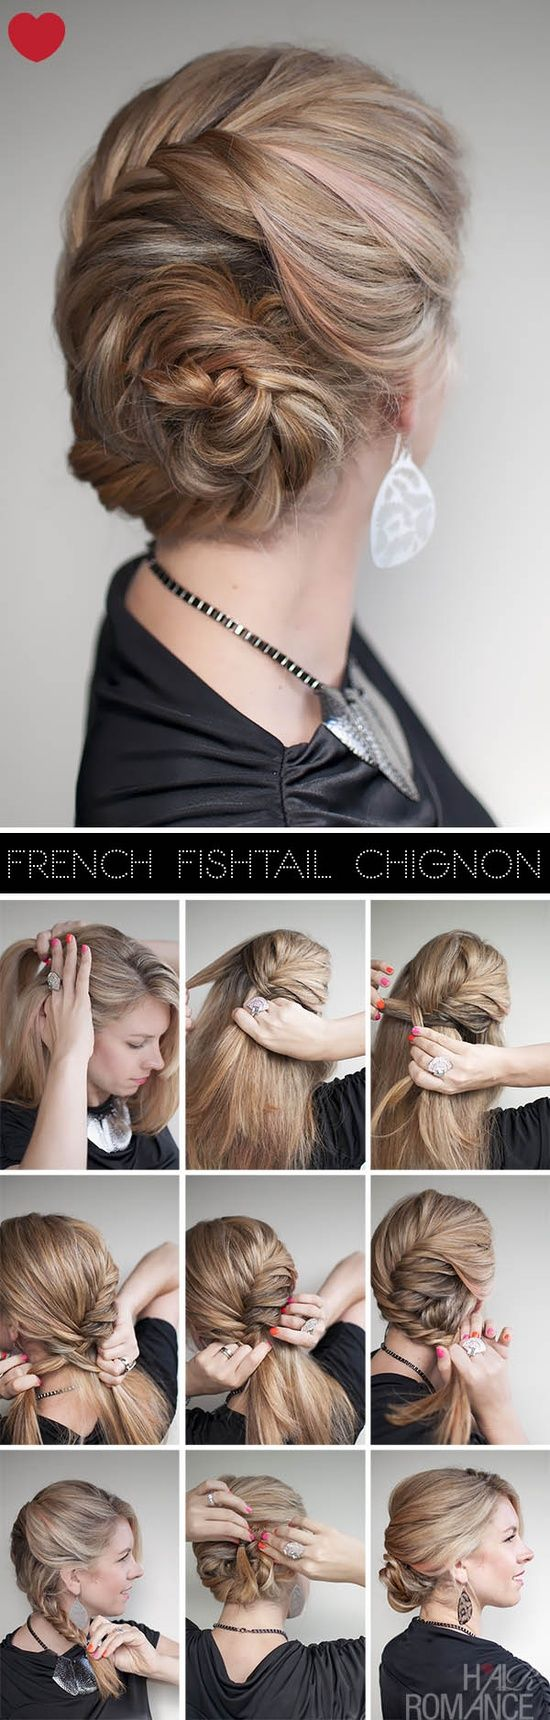 Hair Romance – French fishtail braided chignon hairstyle tutorial @ Fashion and Style